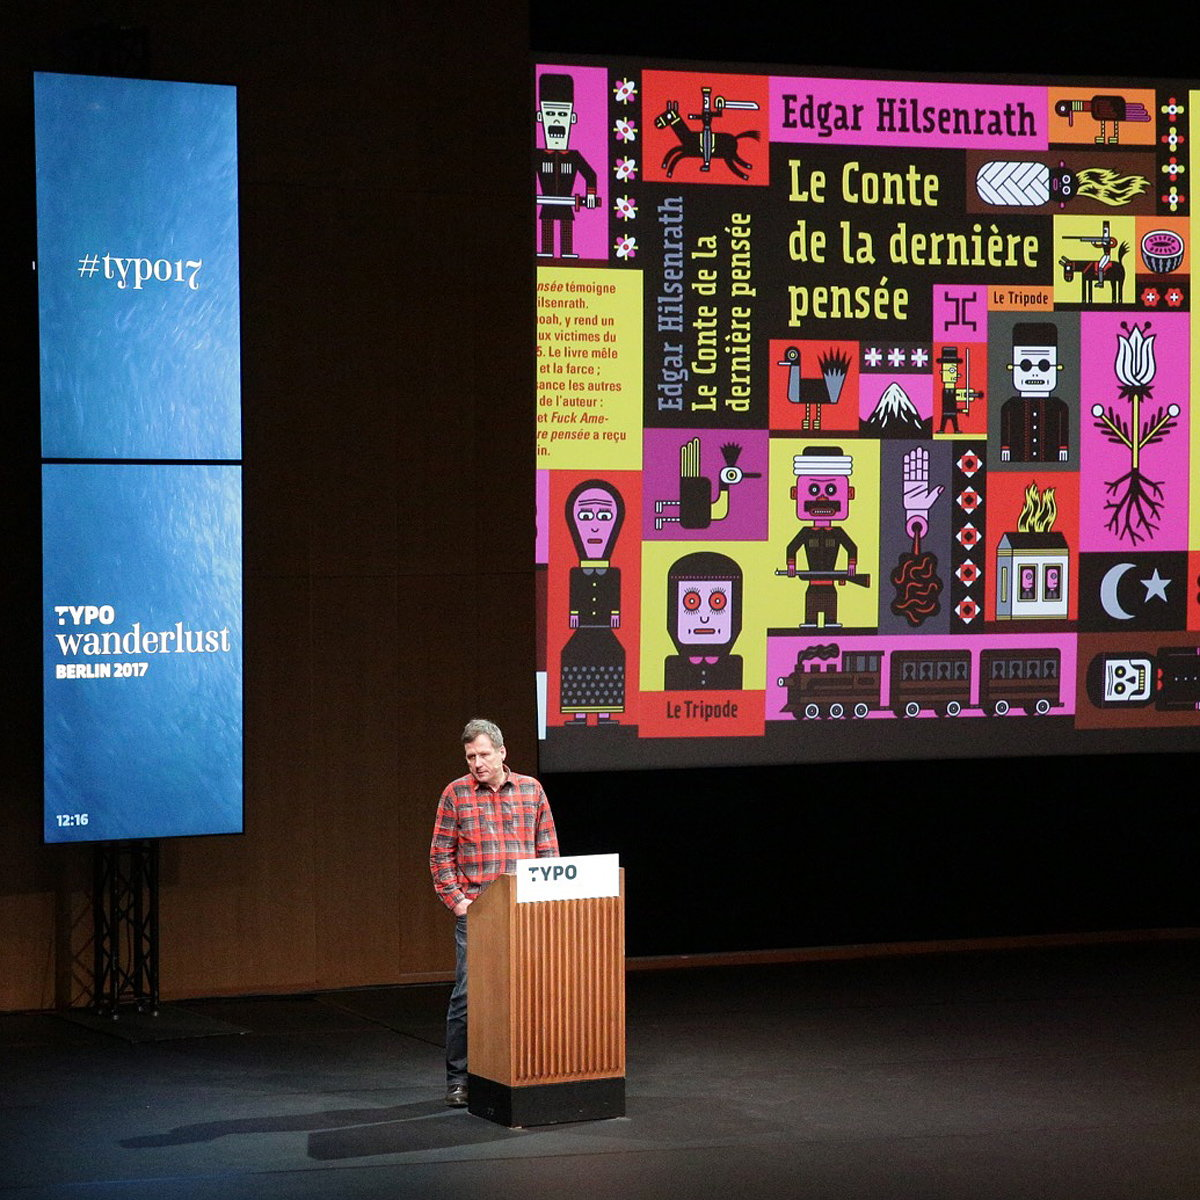 Highlights from TYPO Berlin 2017